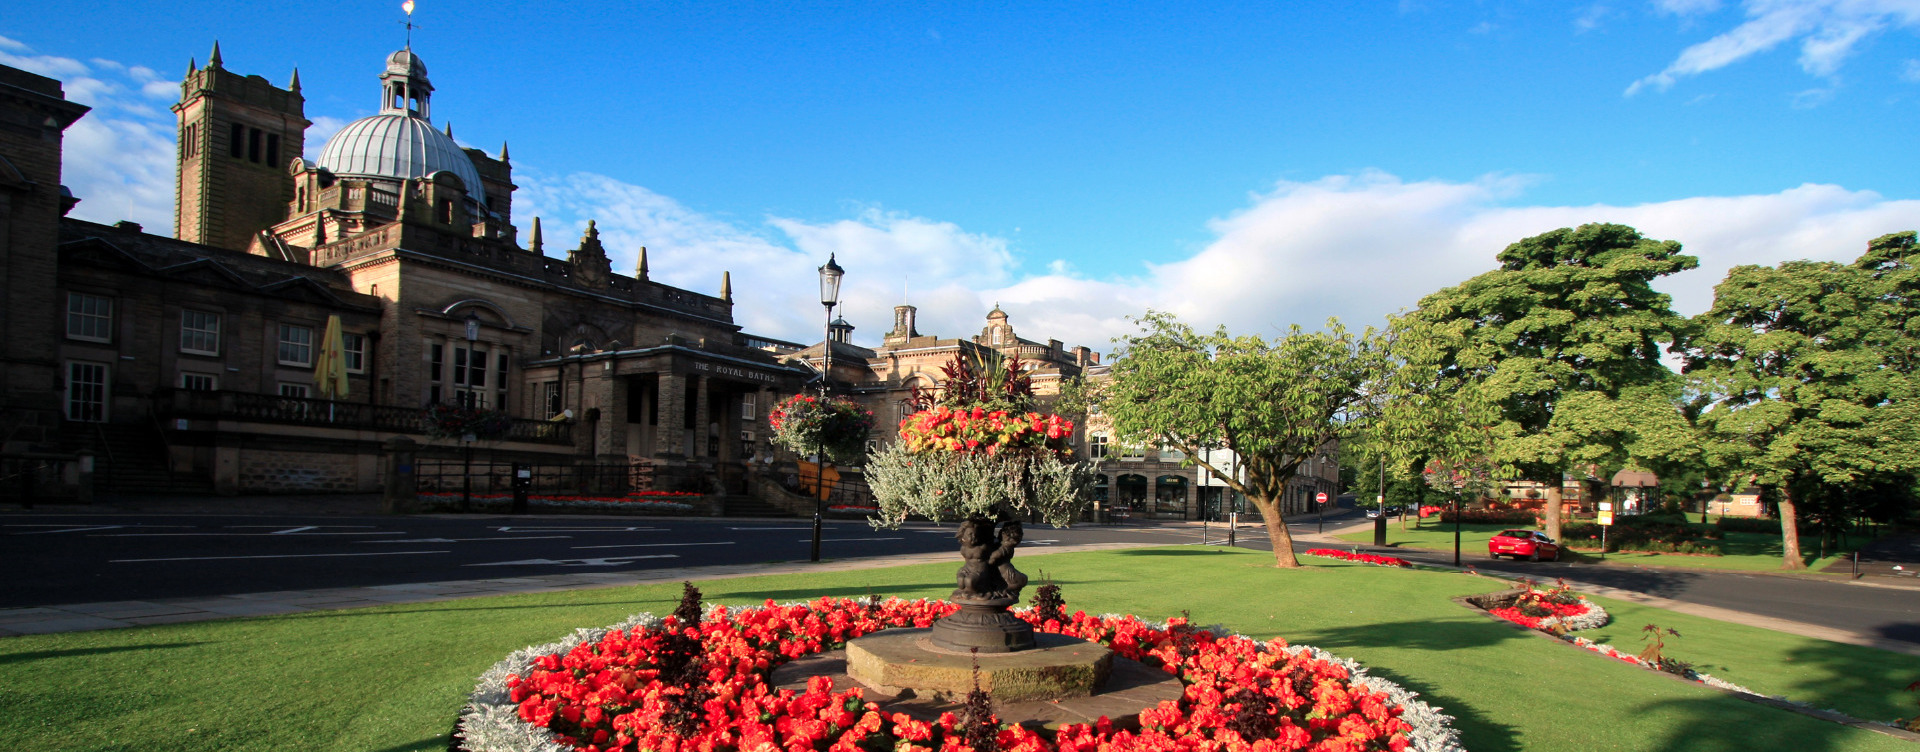 Harrogate Crescent Gardens And Turkish Baths Opposite Harrogate Lifestyle  Serviced Apartments